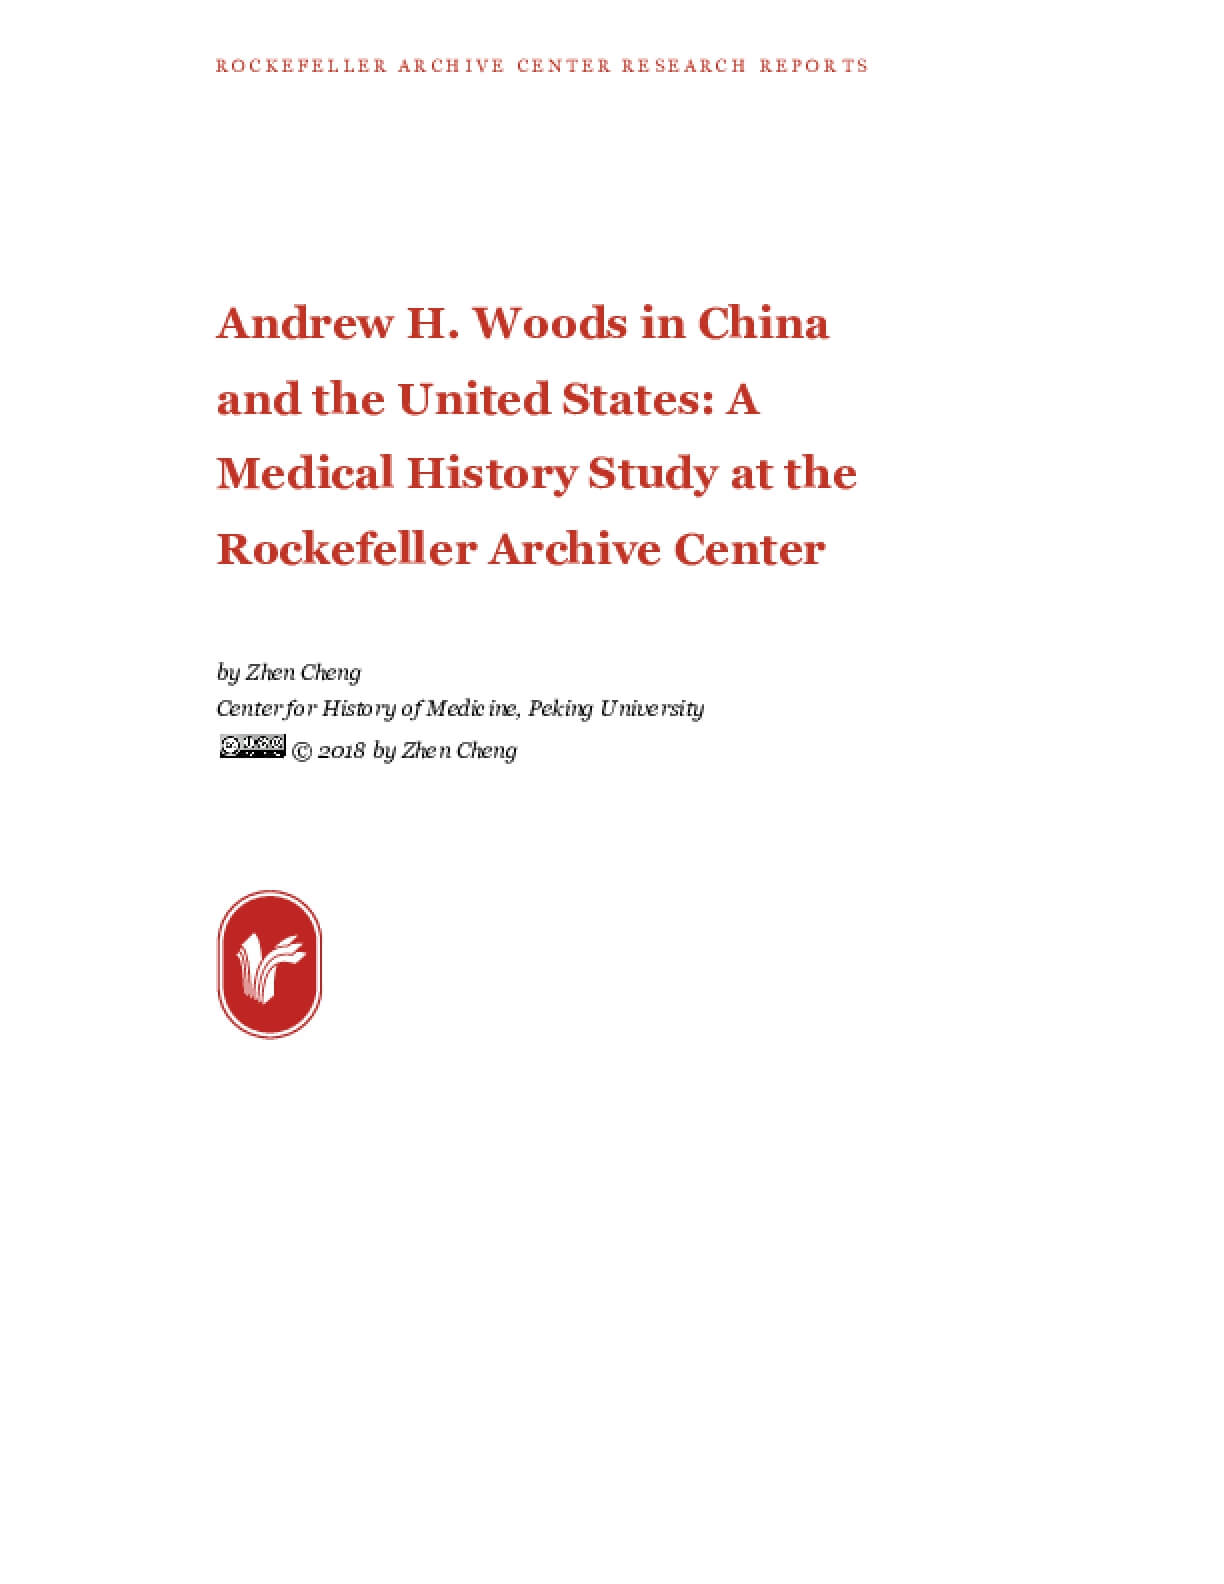 Andrew H. Woods in China and the United States: A Medical History Study at the Rockefeller Archive Center